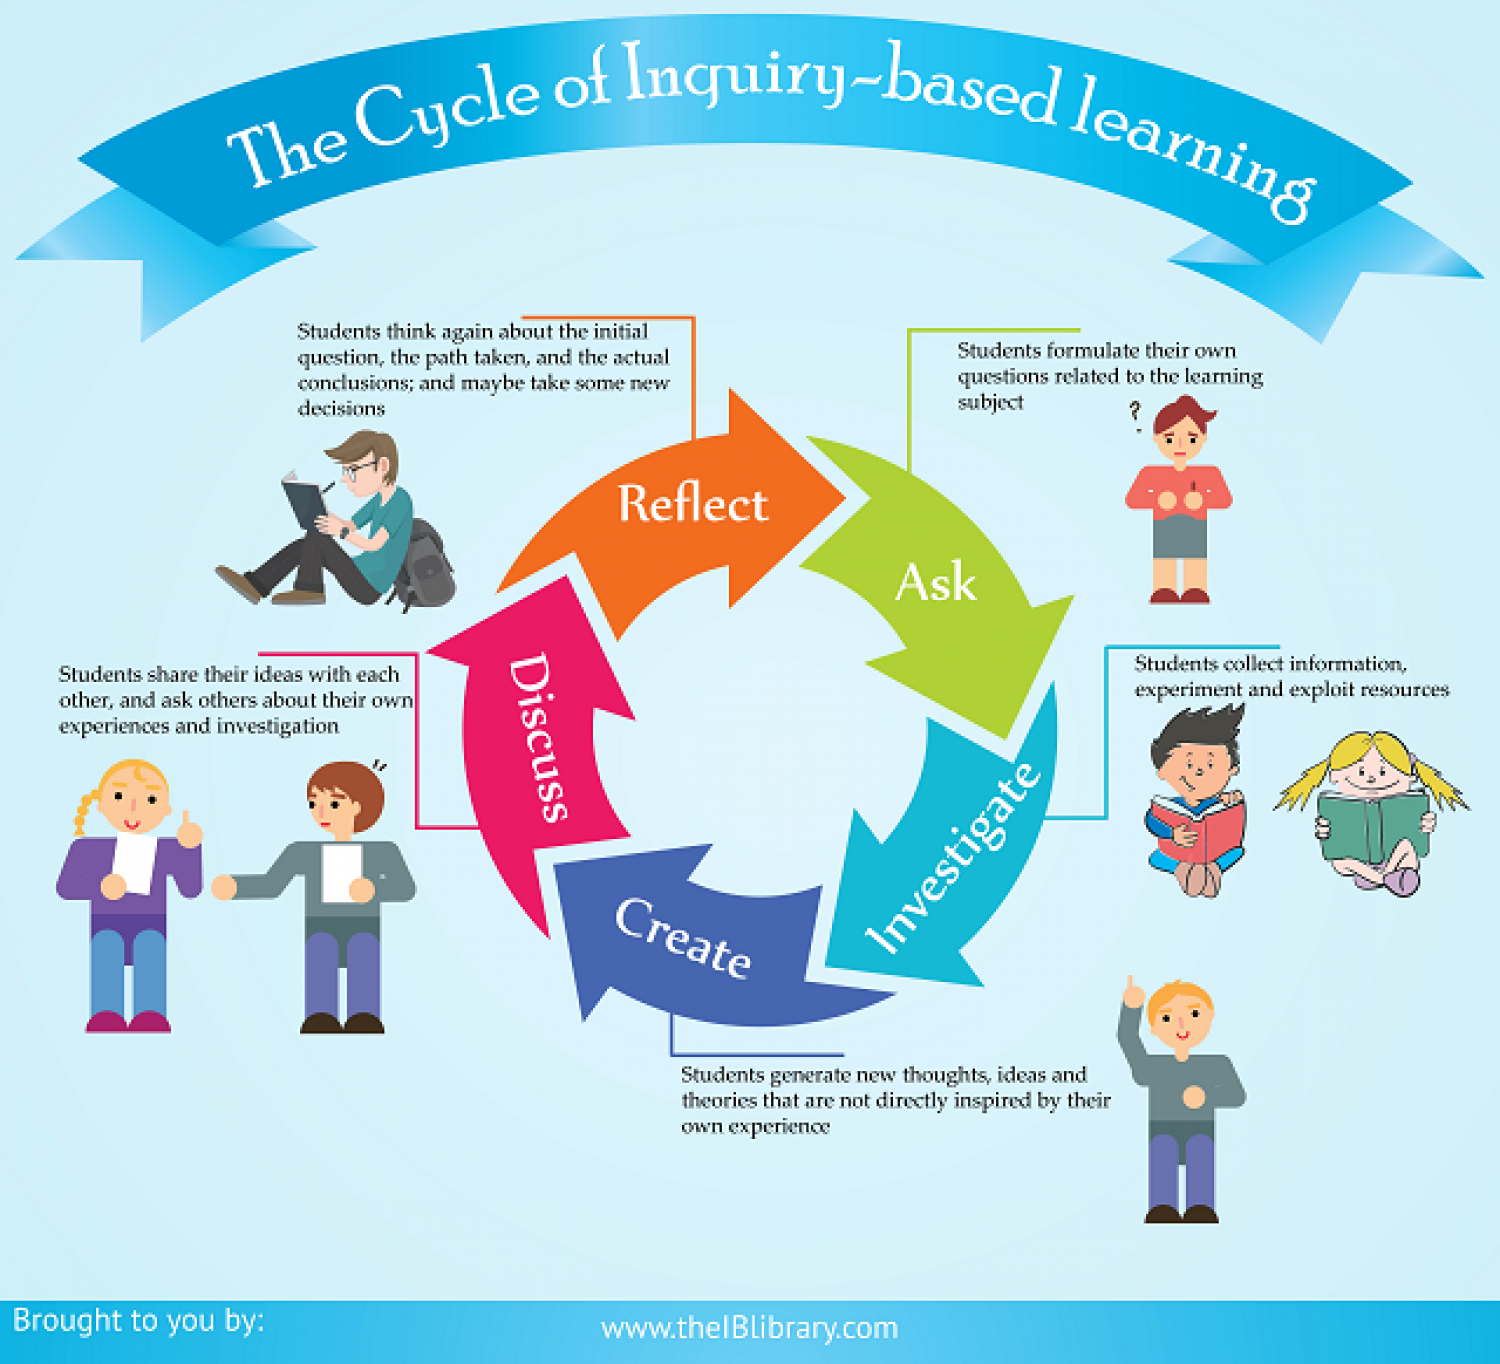 5 Phases Of Inquiry-Based Learning Cycle Infographic - Inquiry Learning PNG